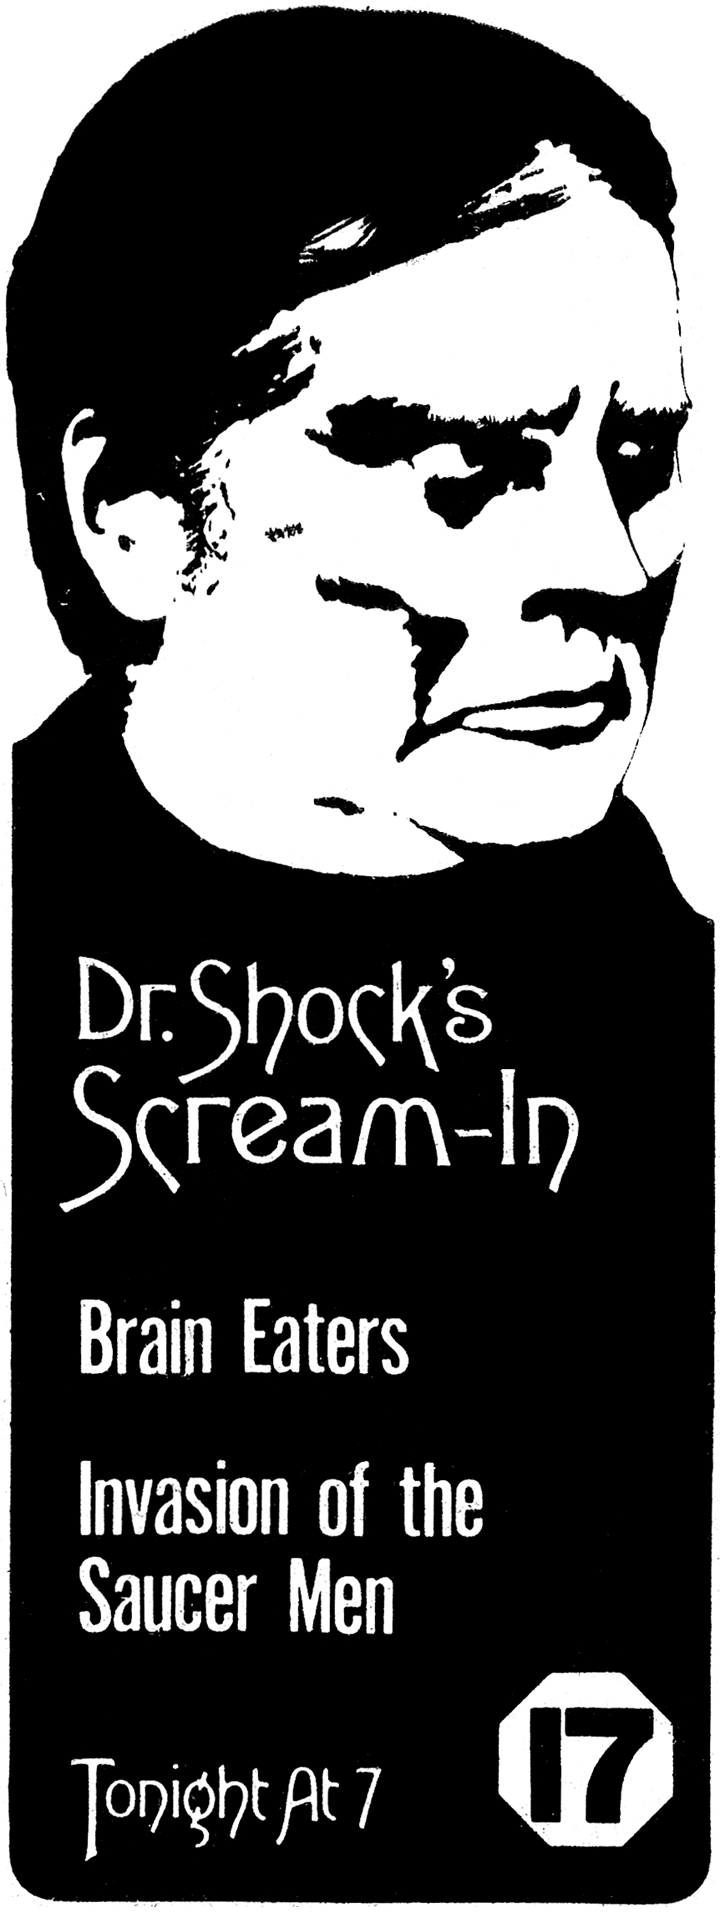 Dr. Shock (a.k.a. Joseph Zawislak) was remembered in my lecture.